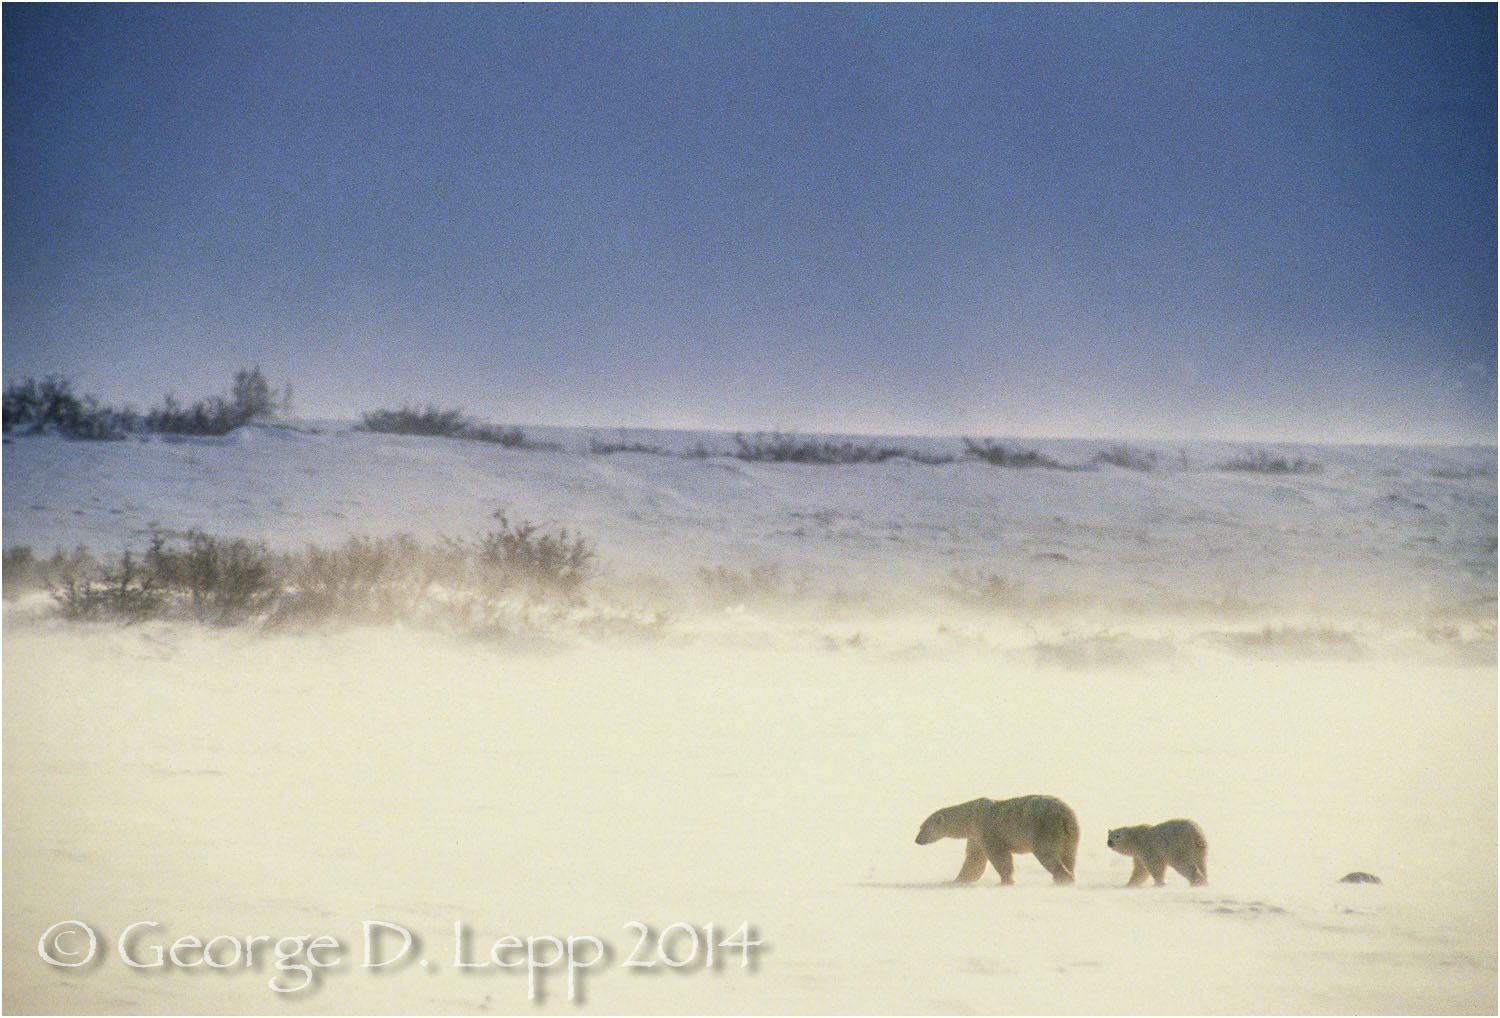 Polar Bear with cub at edge of Hudson Bay, Manitoba, Canada. © George D. Lepp 2014  M-BE-PO-0072